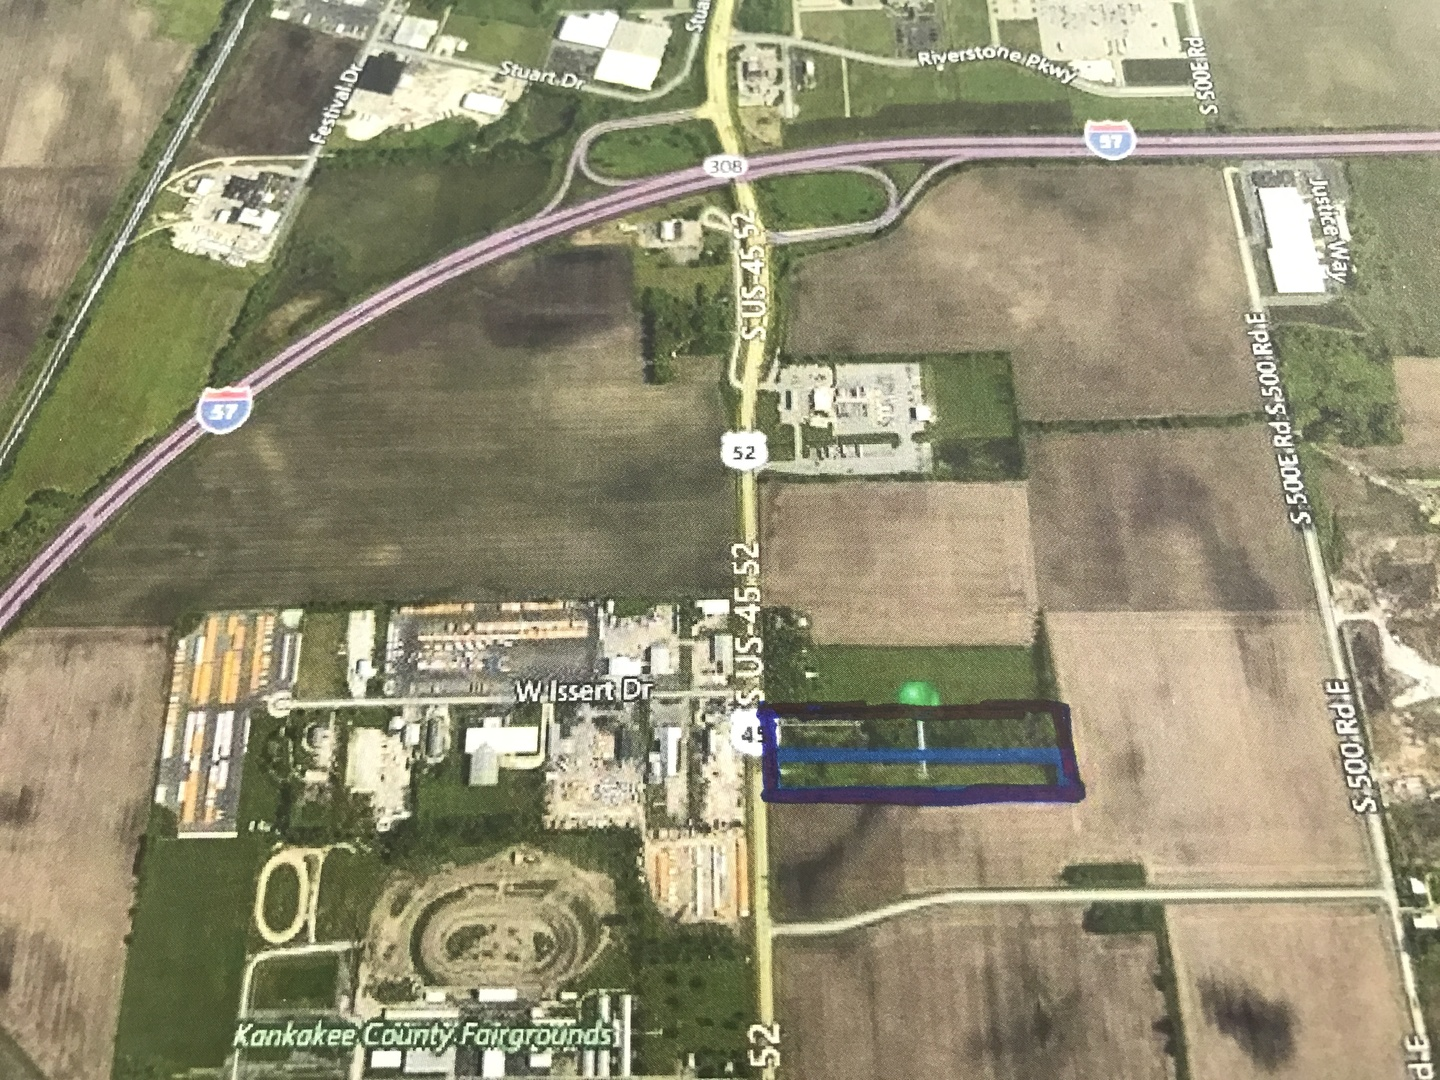 3669 S State Route 45-52, Kankakee, IL 60901